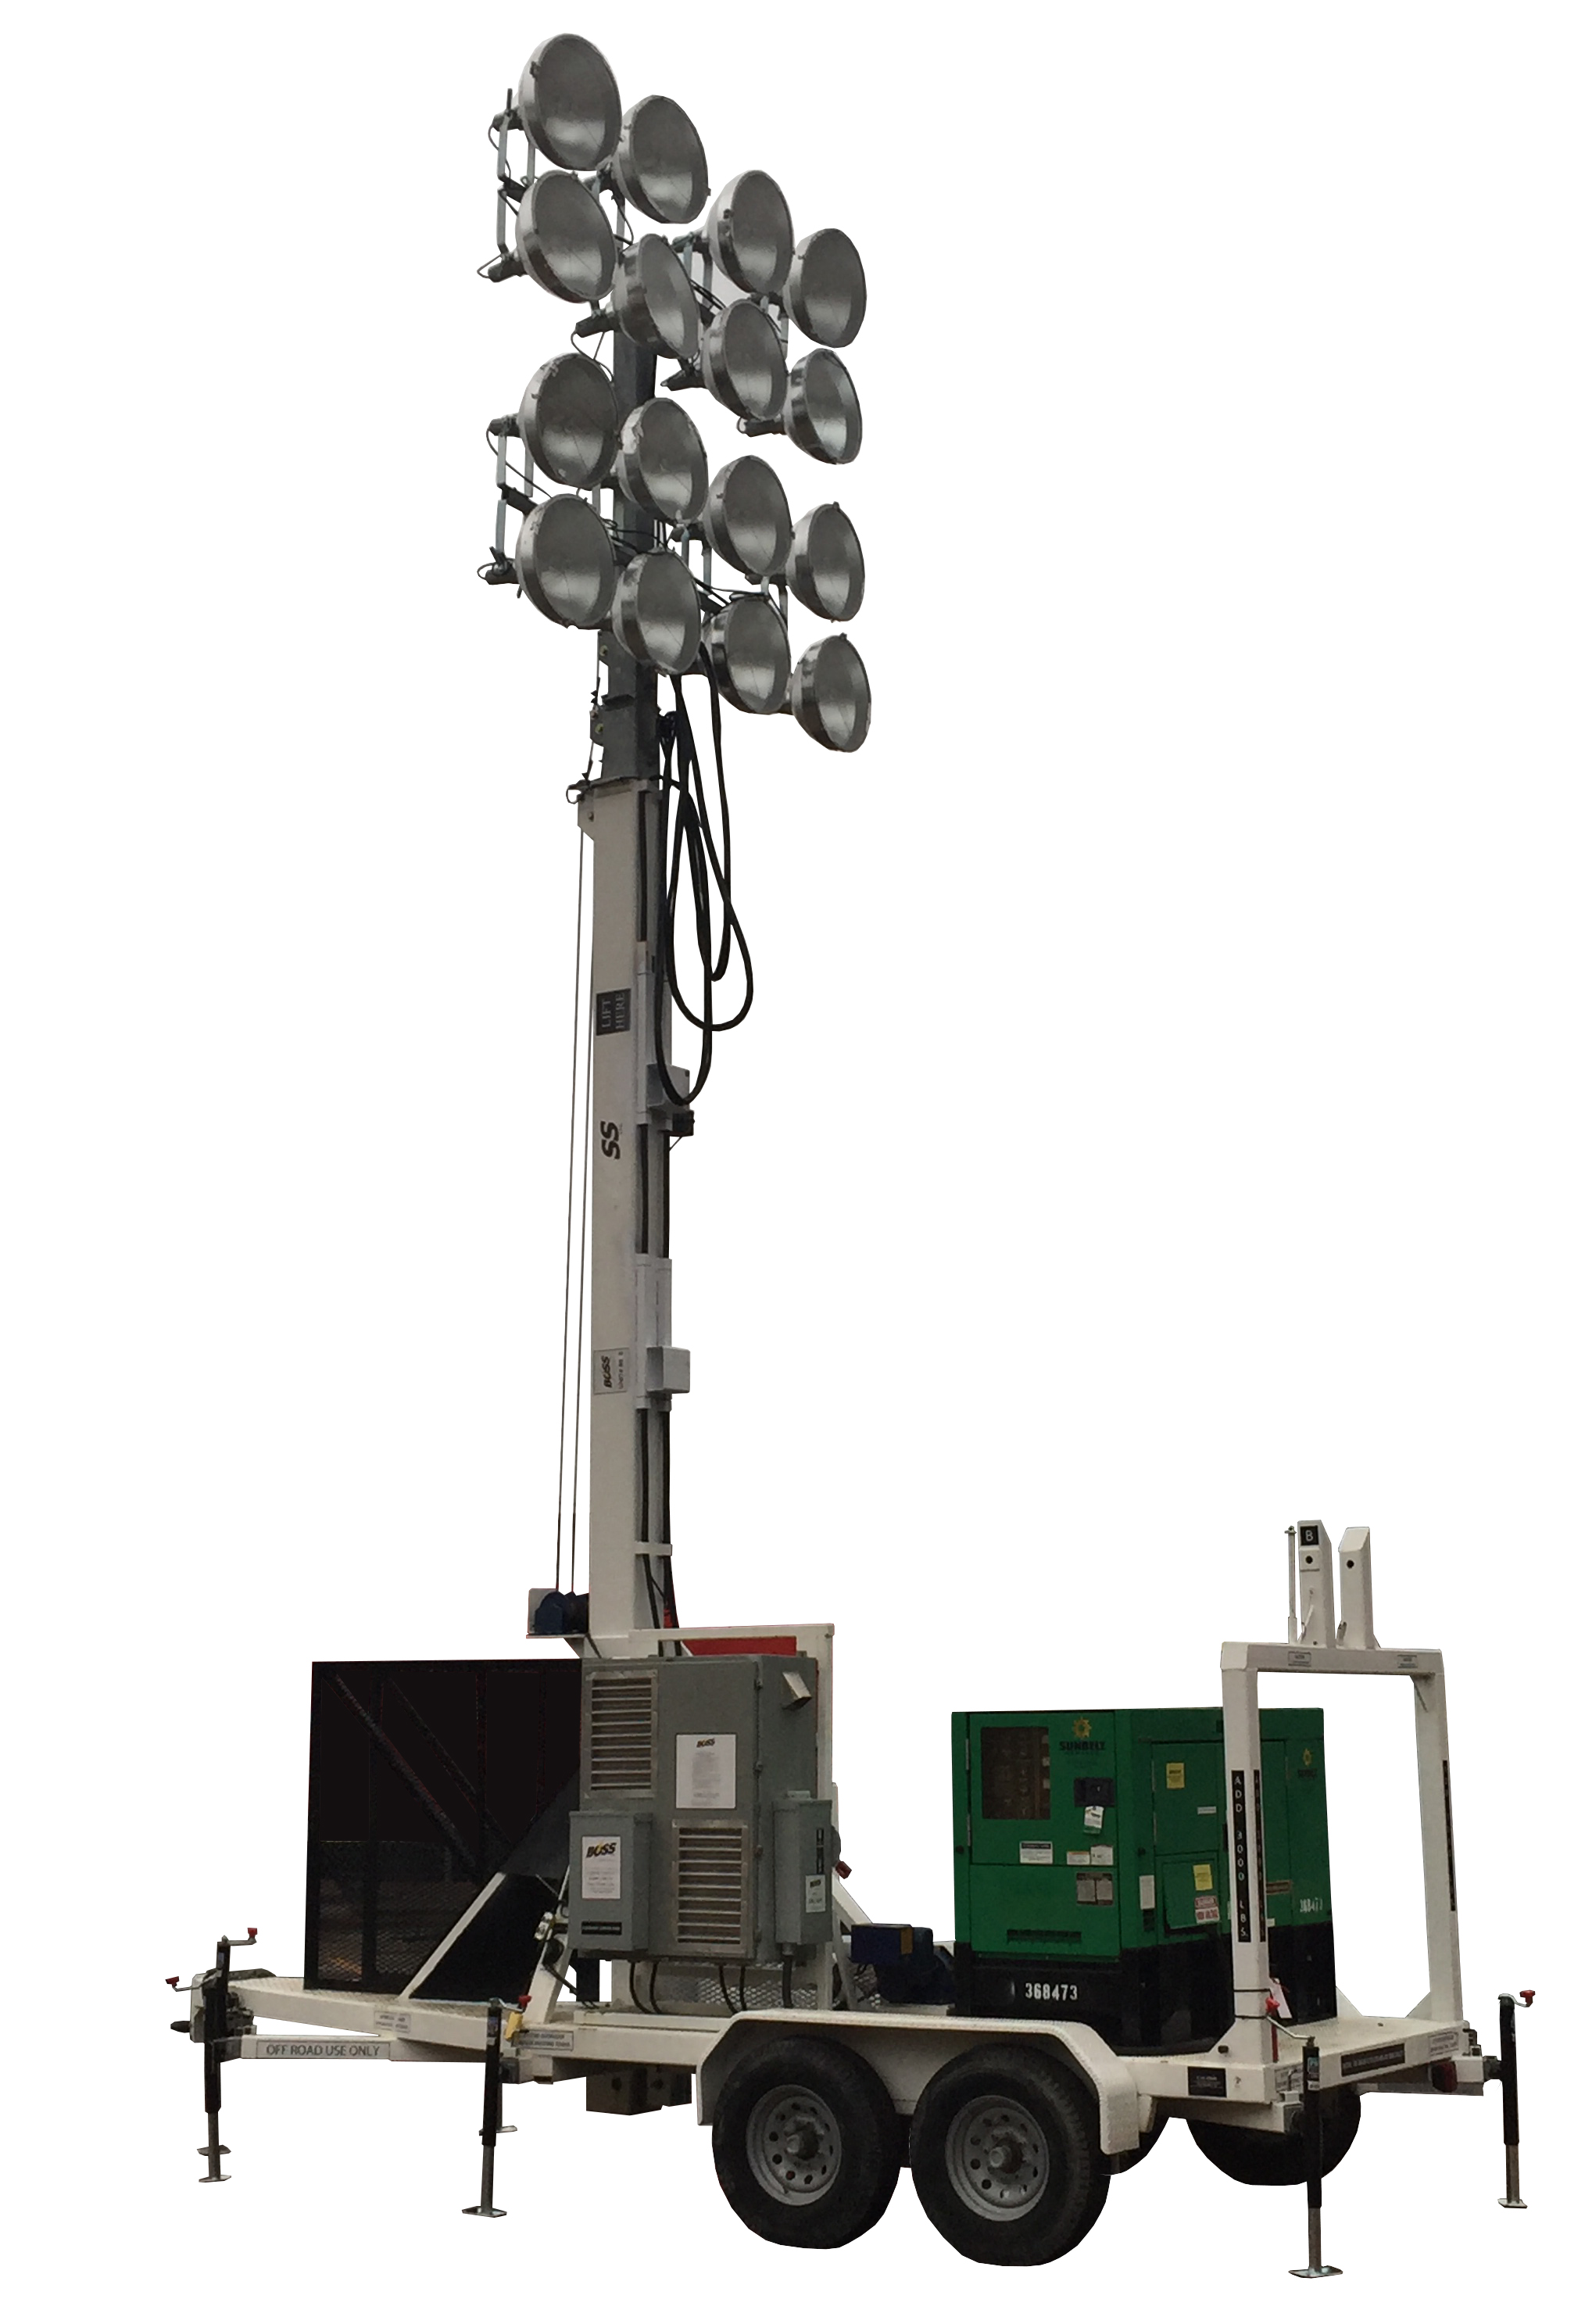 100 FOOT PORTABLE STADIUM LIGHT-TOWER HIGH SCHOOL COLLEGED SPORTS LIGHTING. RNT: SFLT-BUMQ2516MH-60′-1000W: High School & College Portable Sports Stadium Light Towers: 60′,80'&100′ Towers, 16-Floodlights, Diesel or Electric Power